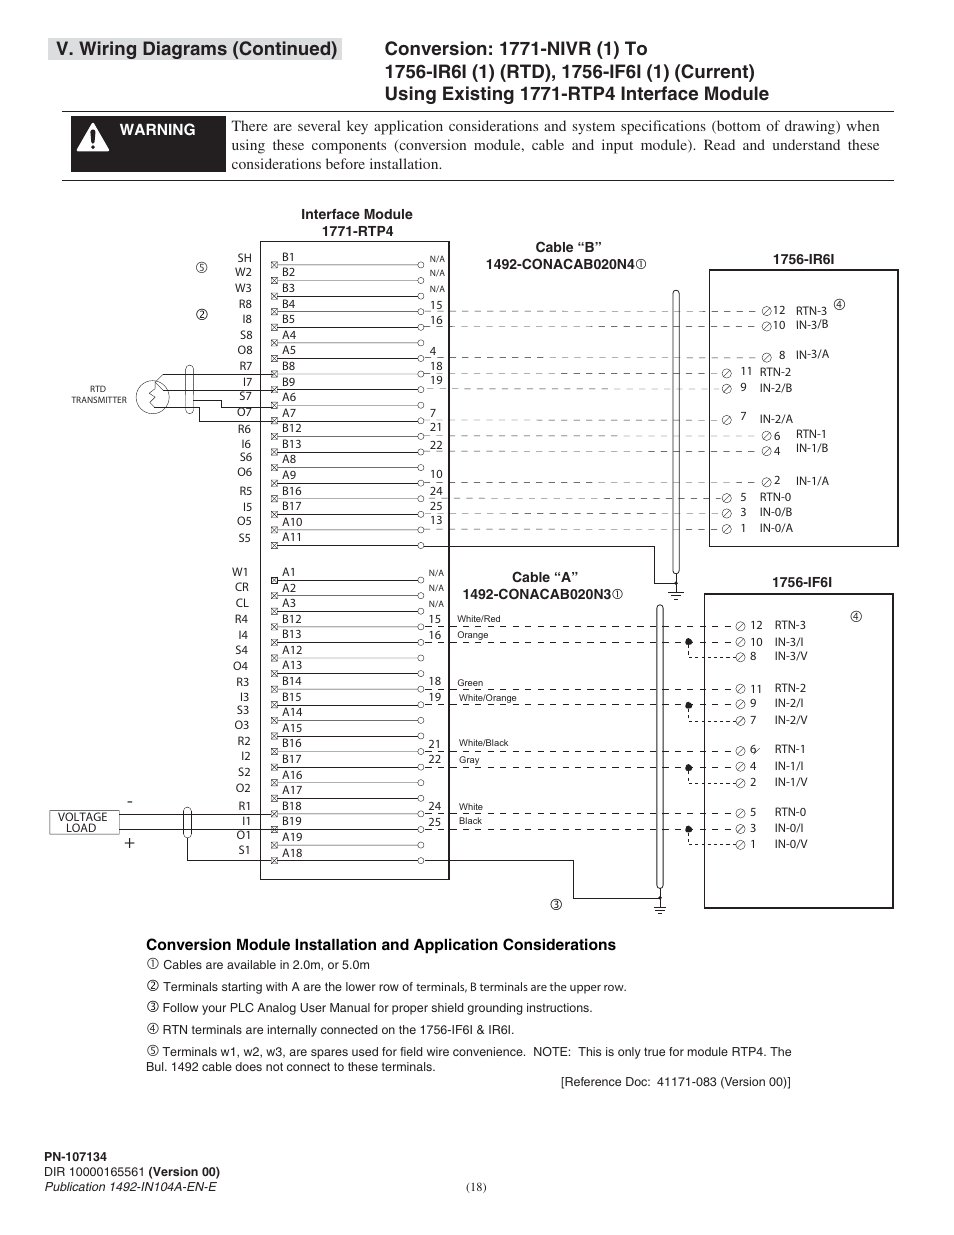 rockwell automation 1492 1771 n series i_o to 1756 controllogix i_o page18?resize\\\\\\\\\\\\\\\=665%2C861 1746 ow16 wiring diagram gmc fuse box diagrams, internet of 1746 ib16 wiring diagram at bakdesigns.co